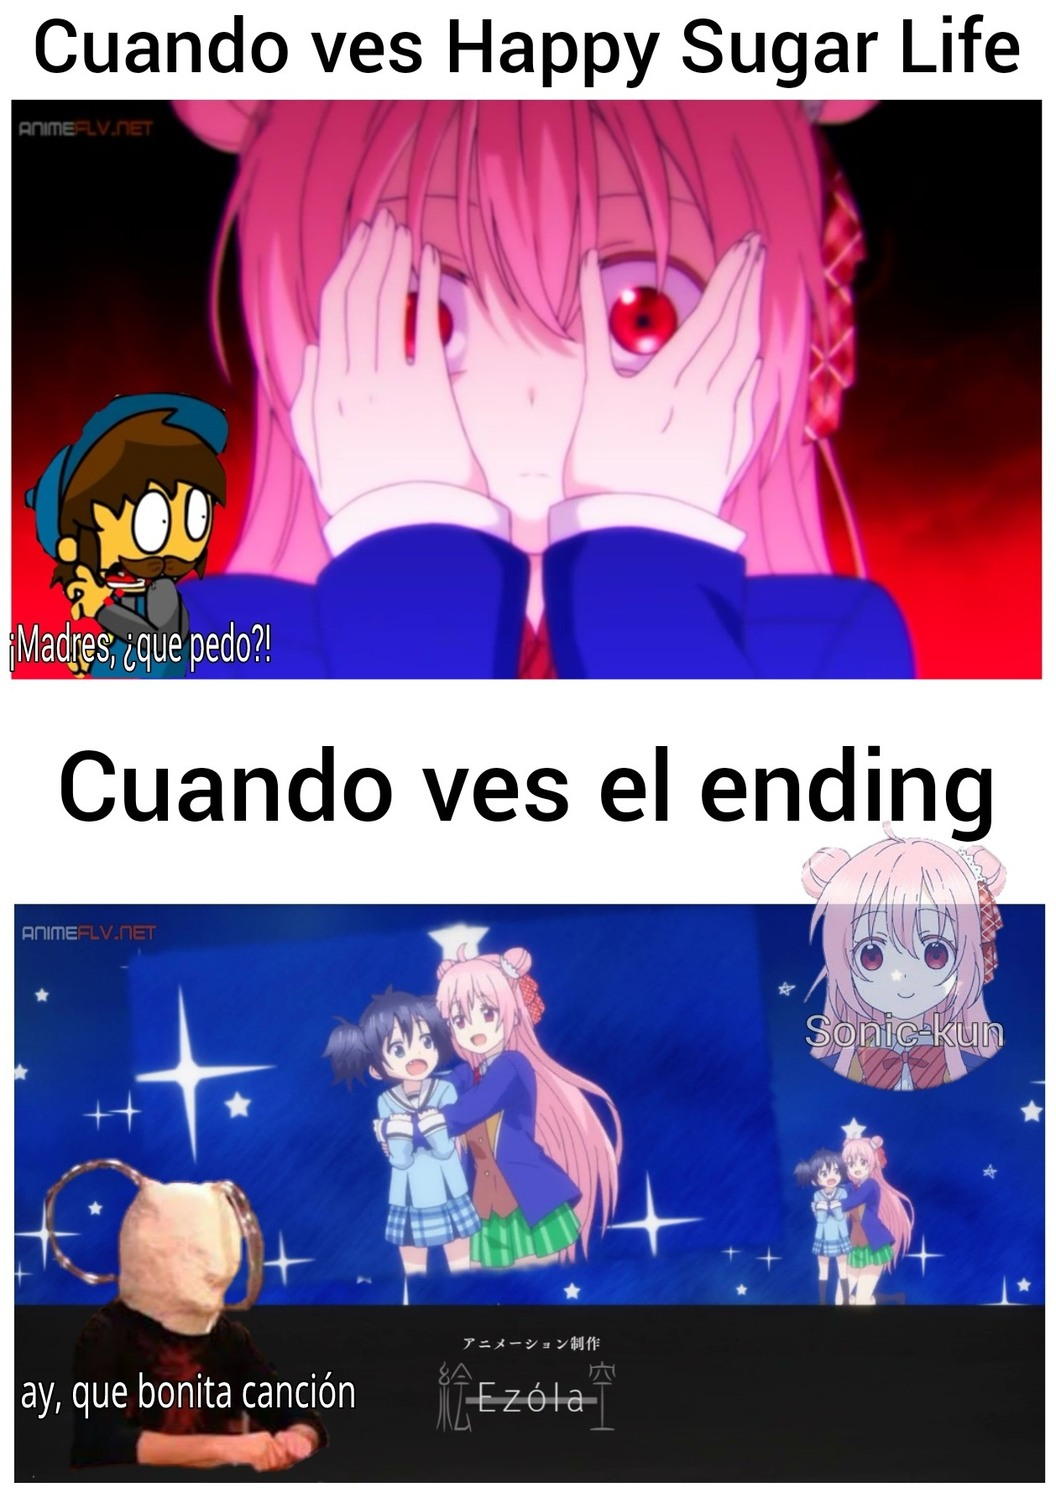 12va: Vida: Happy Sugar Life - meme